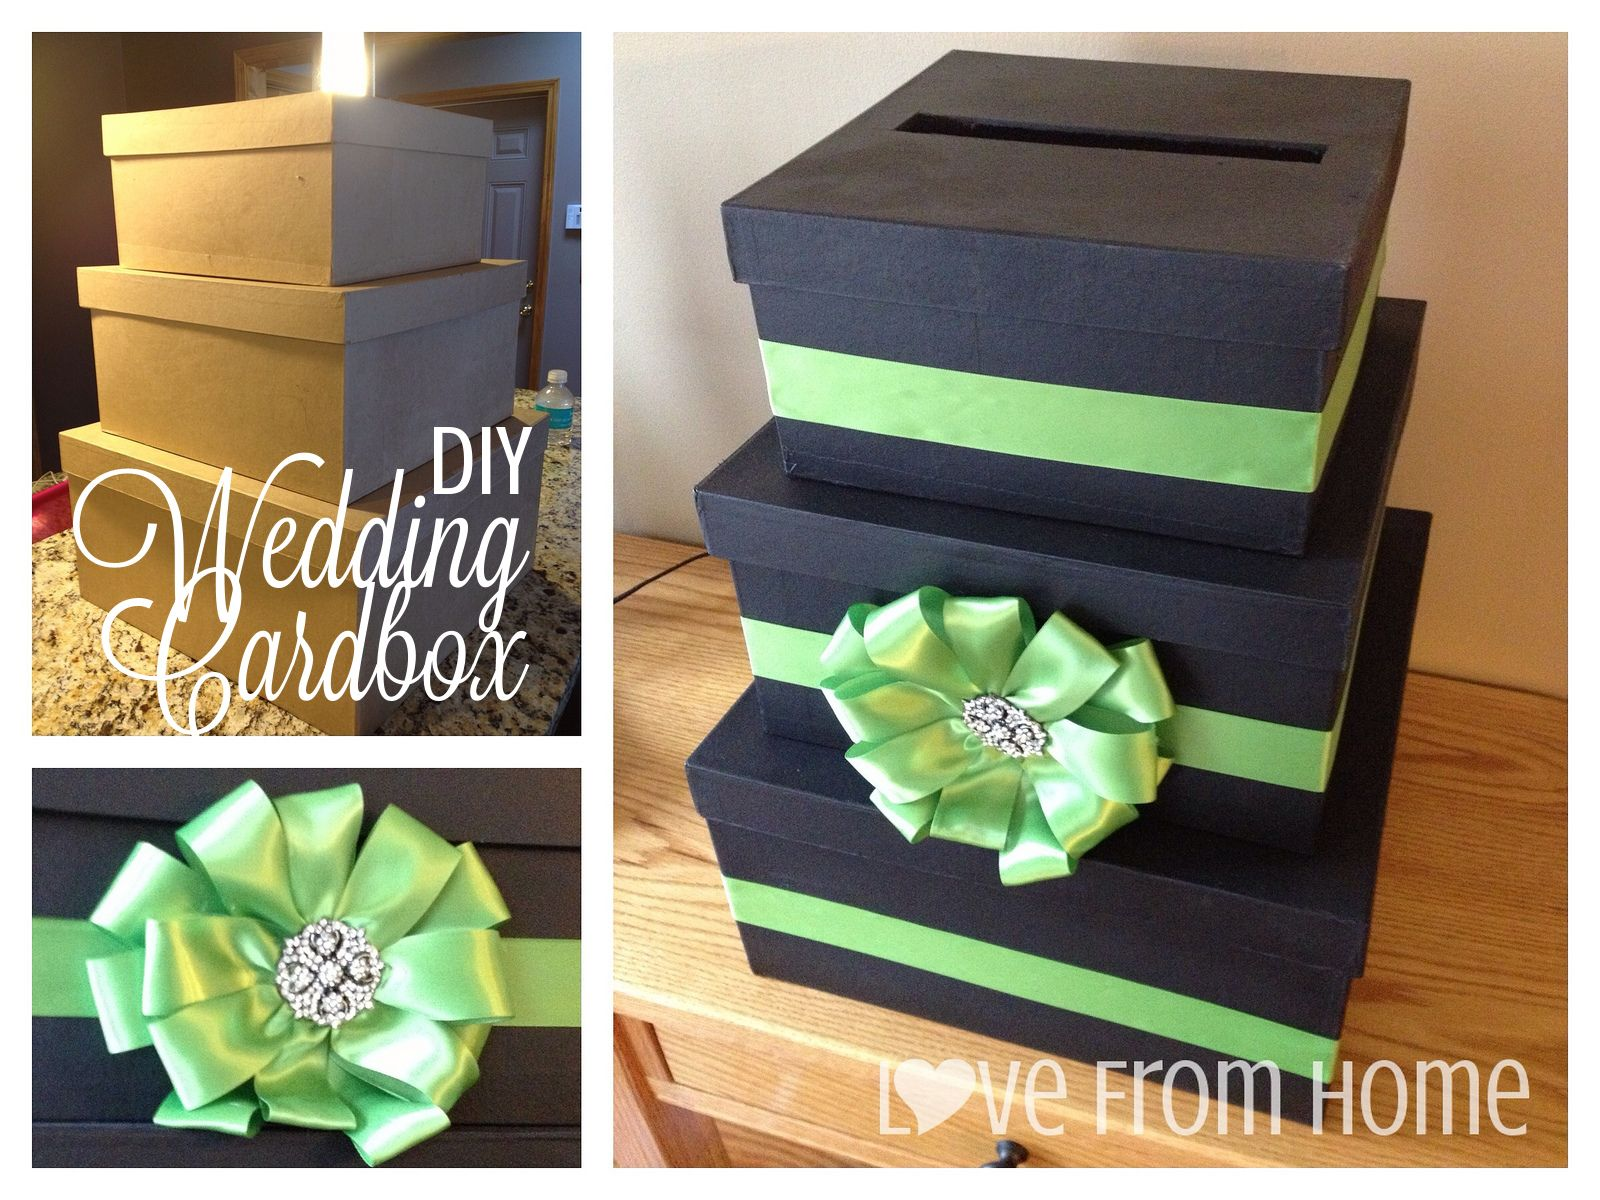 paper mache boxes Google Search – Diy Wedding Card Box Instructions